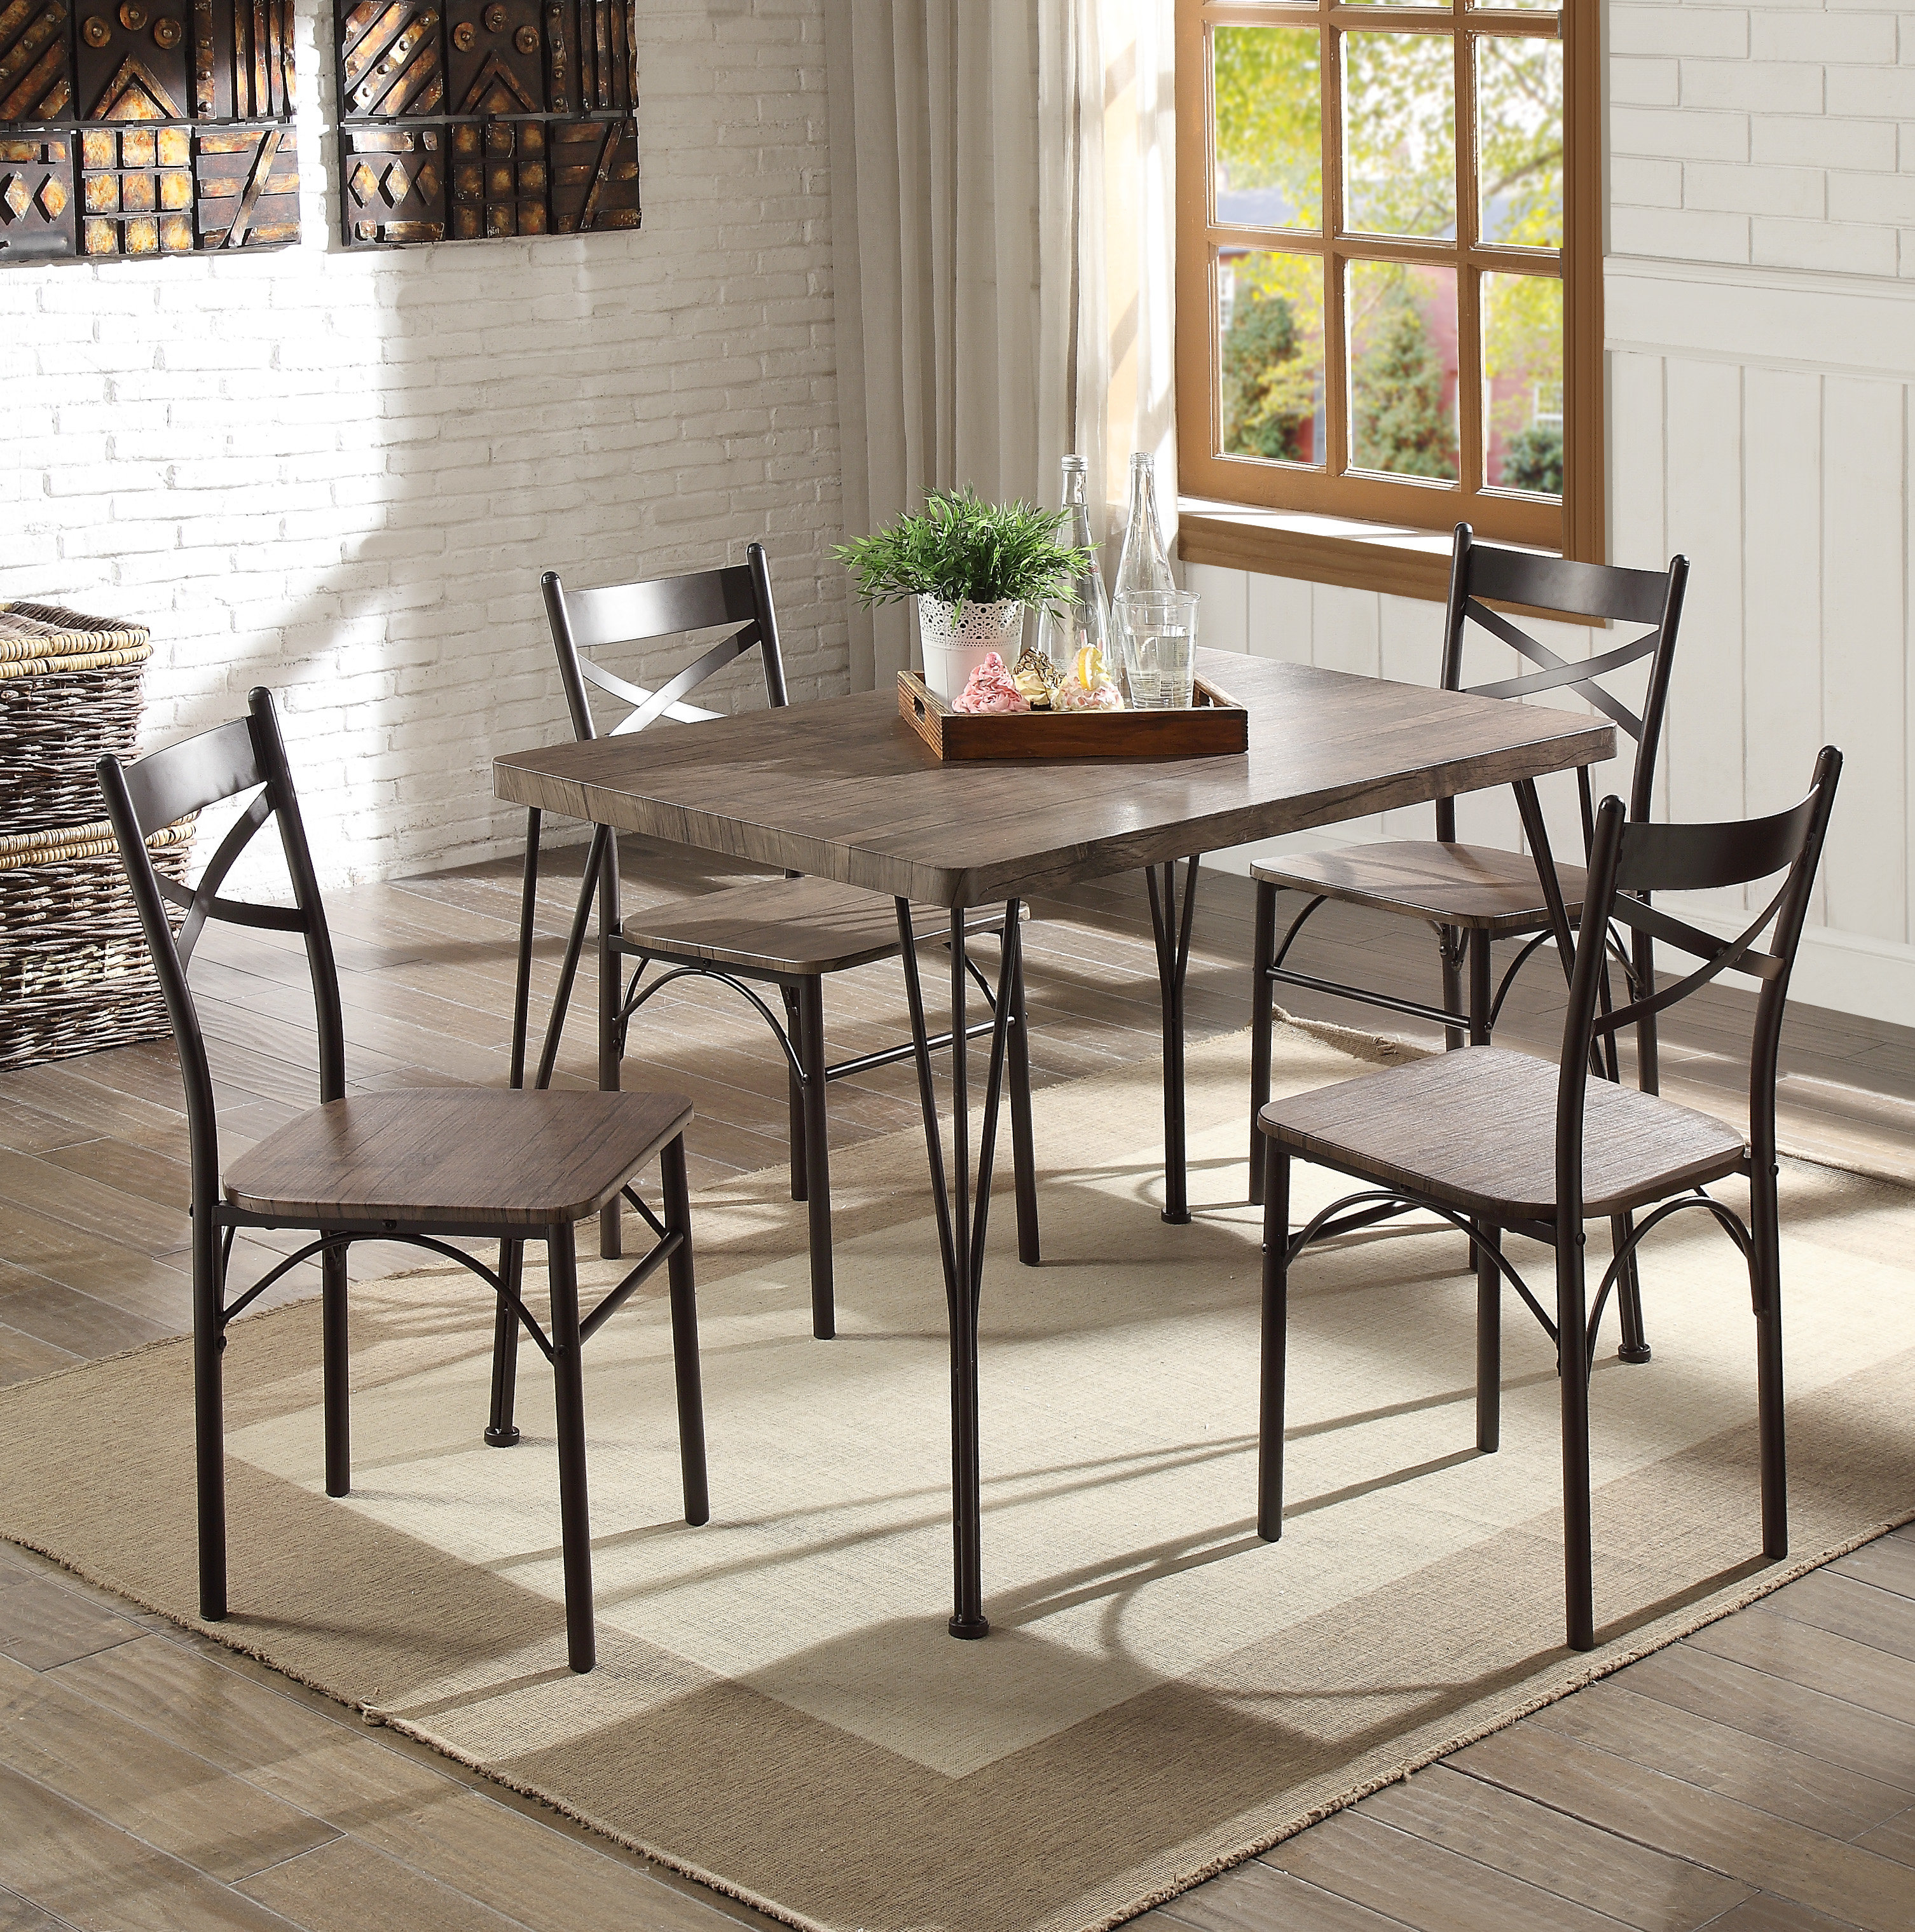 Andover Mills Middleport 5 Piece Dining Set Intended For Most Popular Middleport 5 Piece Dining Sets (Photo 2 of 20)